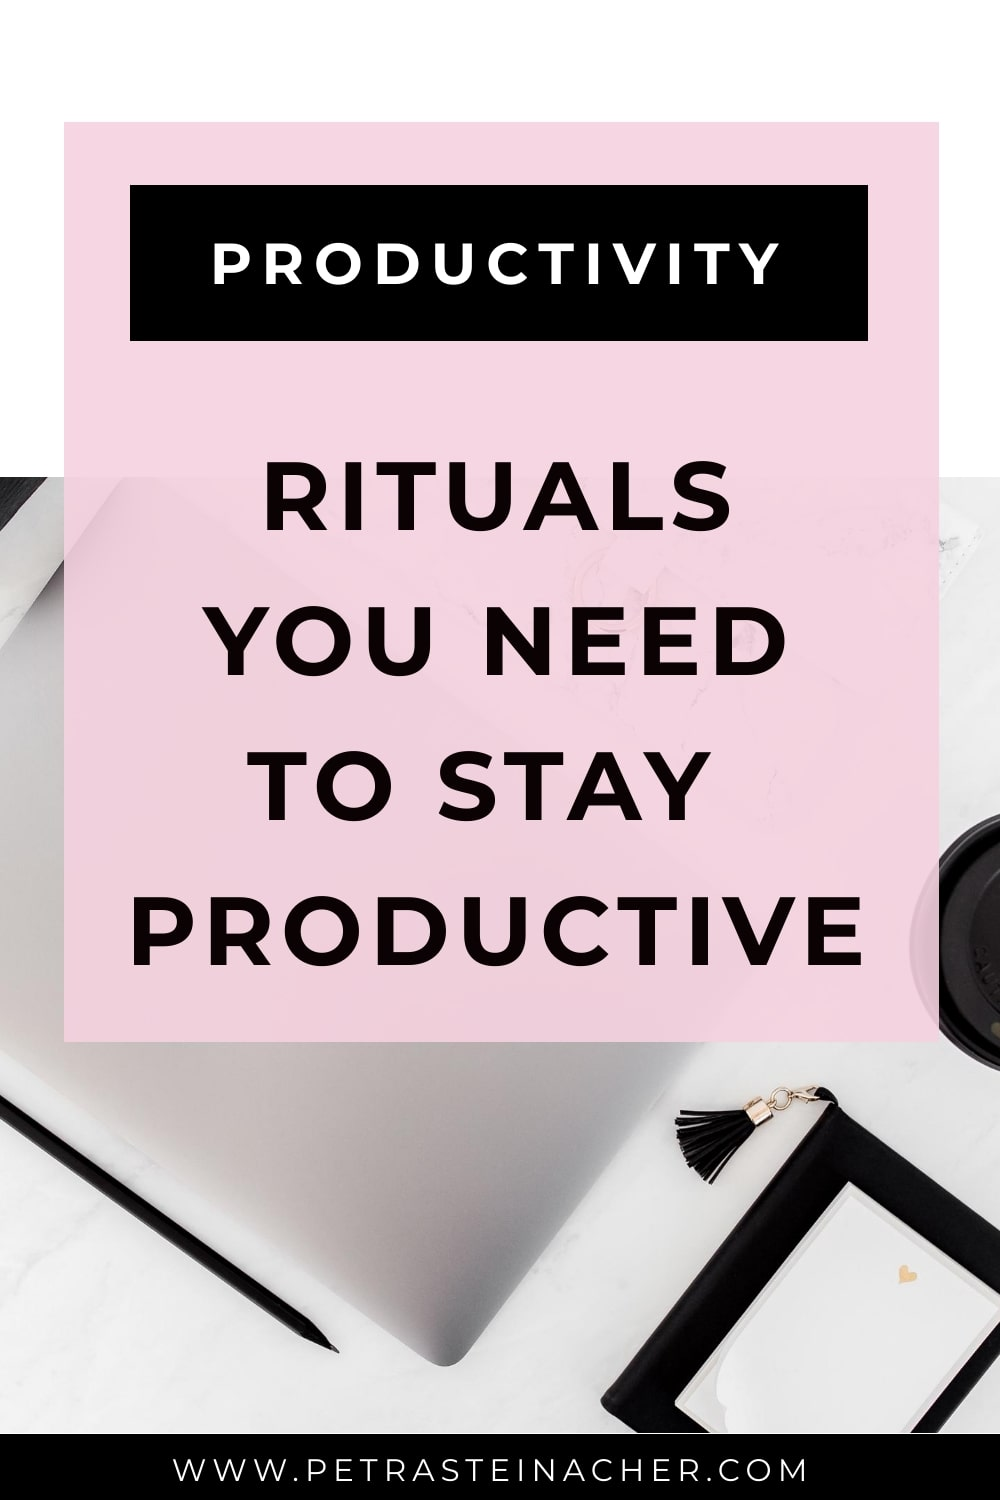 Rituals You Need To Stay Productive